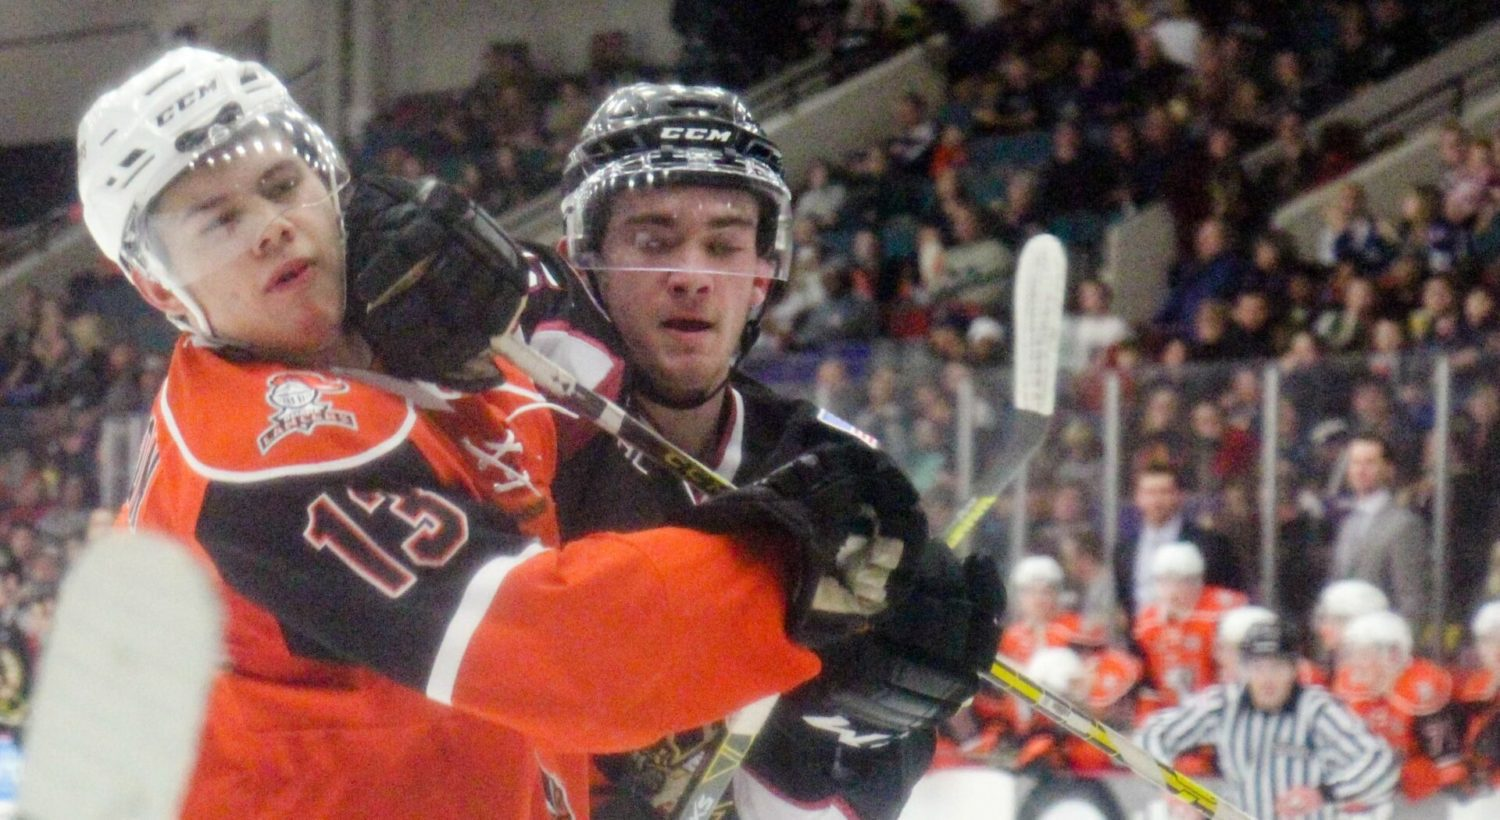 Muskegon Lumberjacks win third in a row, in front of 3,828 fans at L.C. Walker Arena